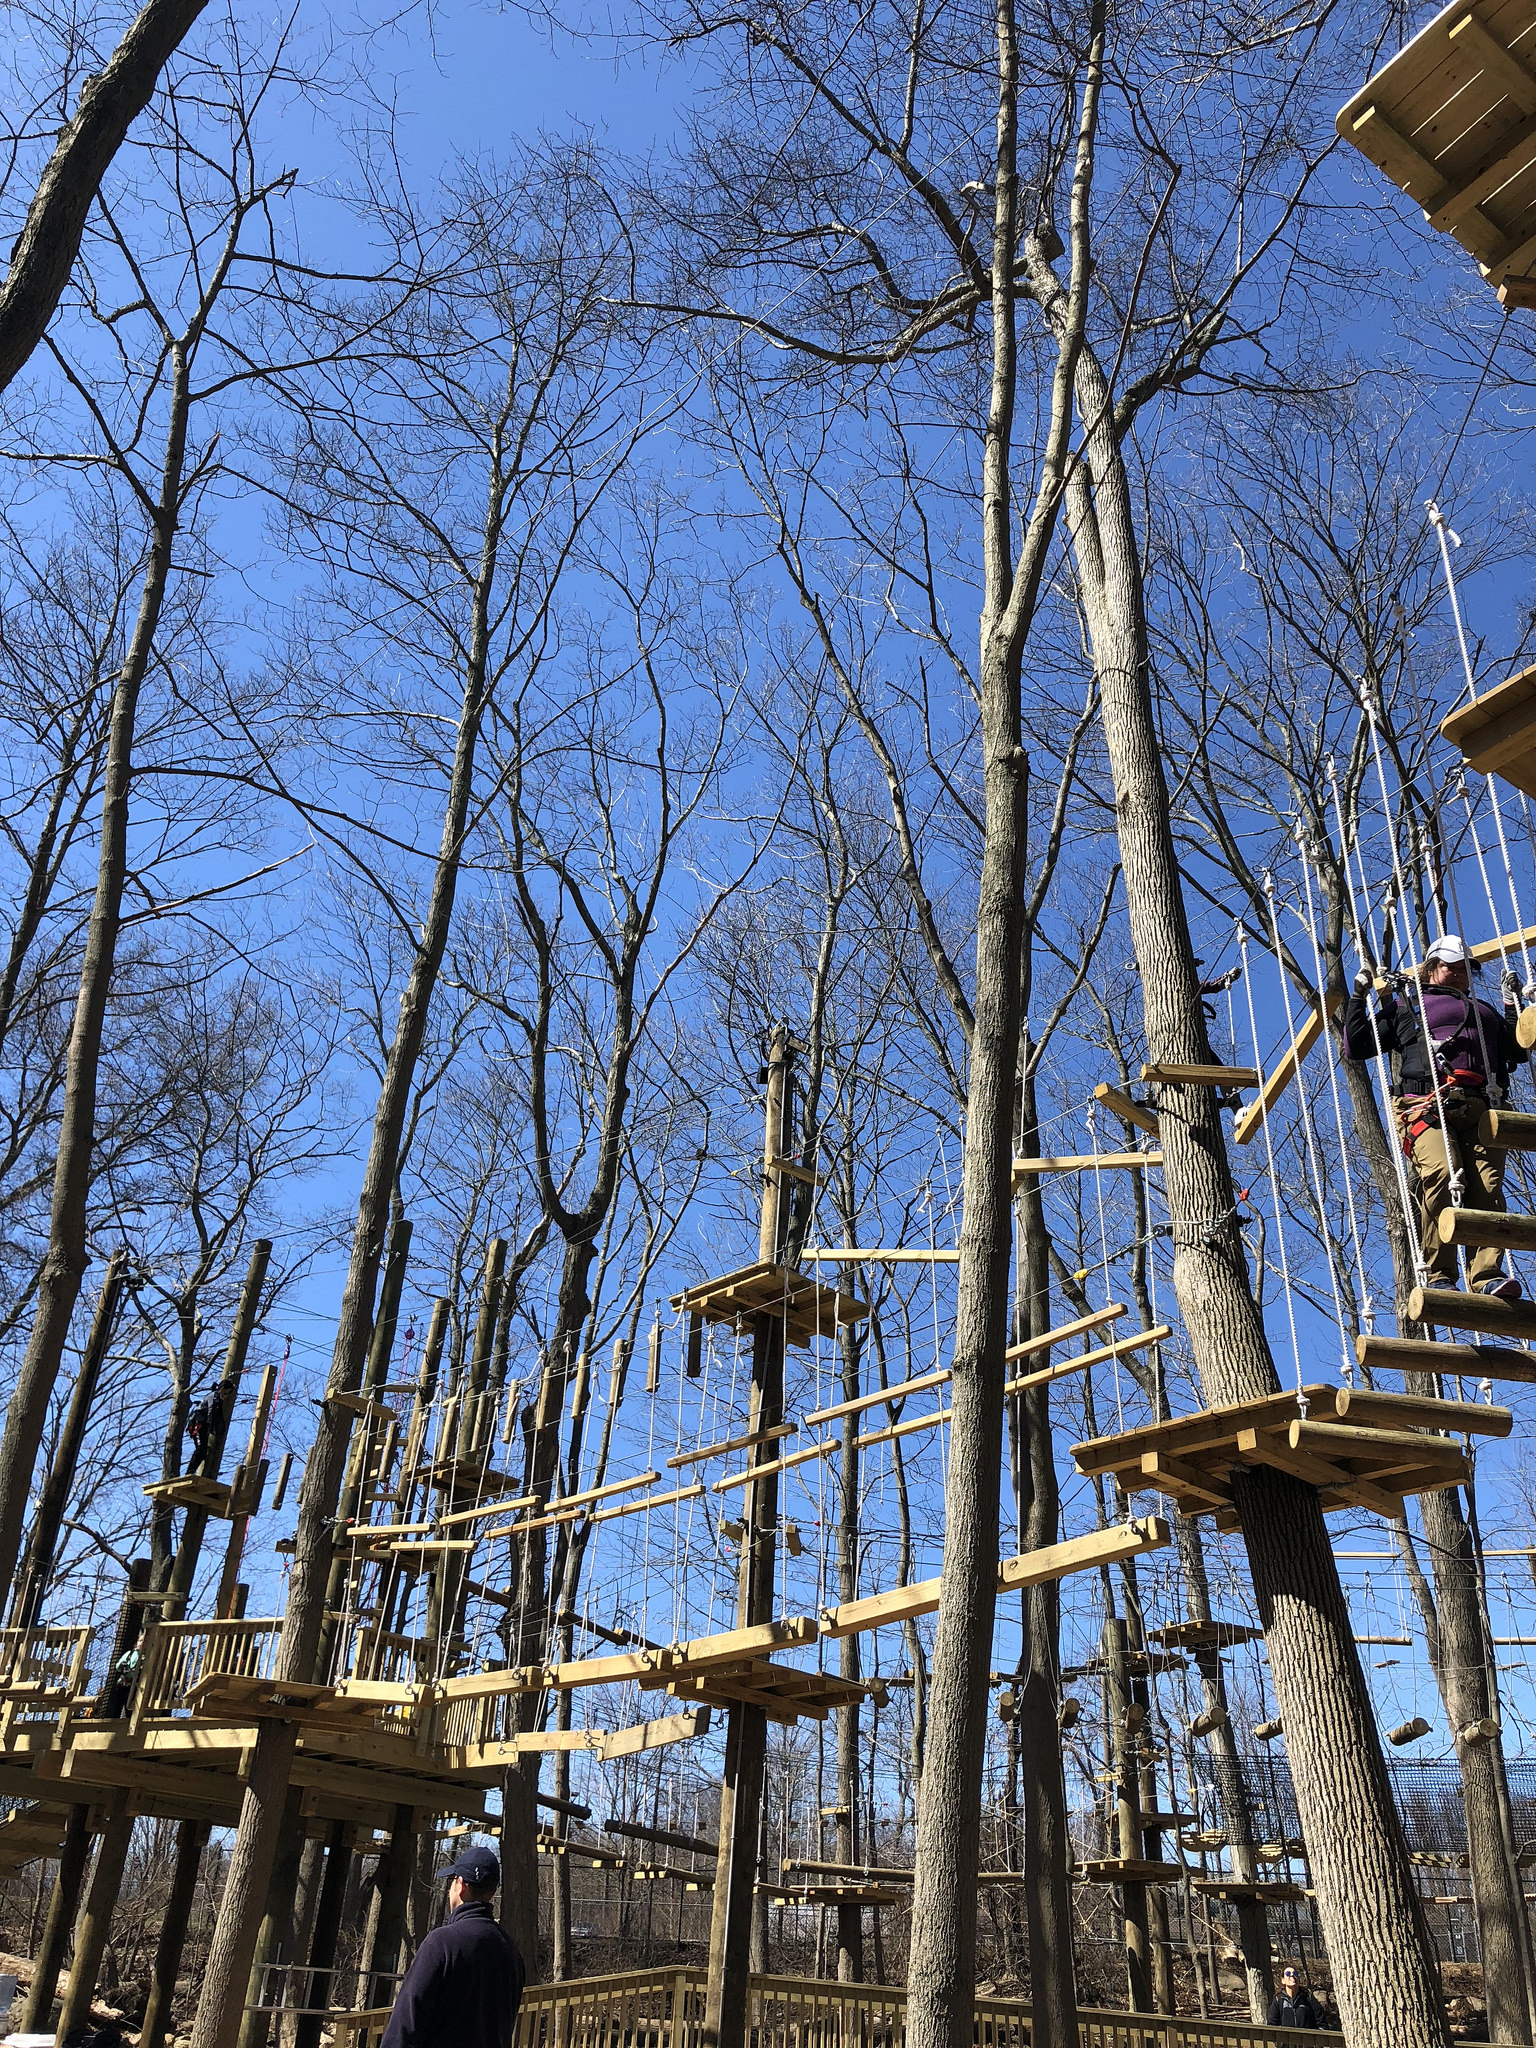 boundless adventures is so fun! check it out in purchase, ny